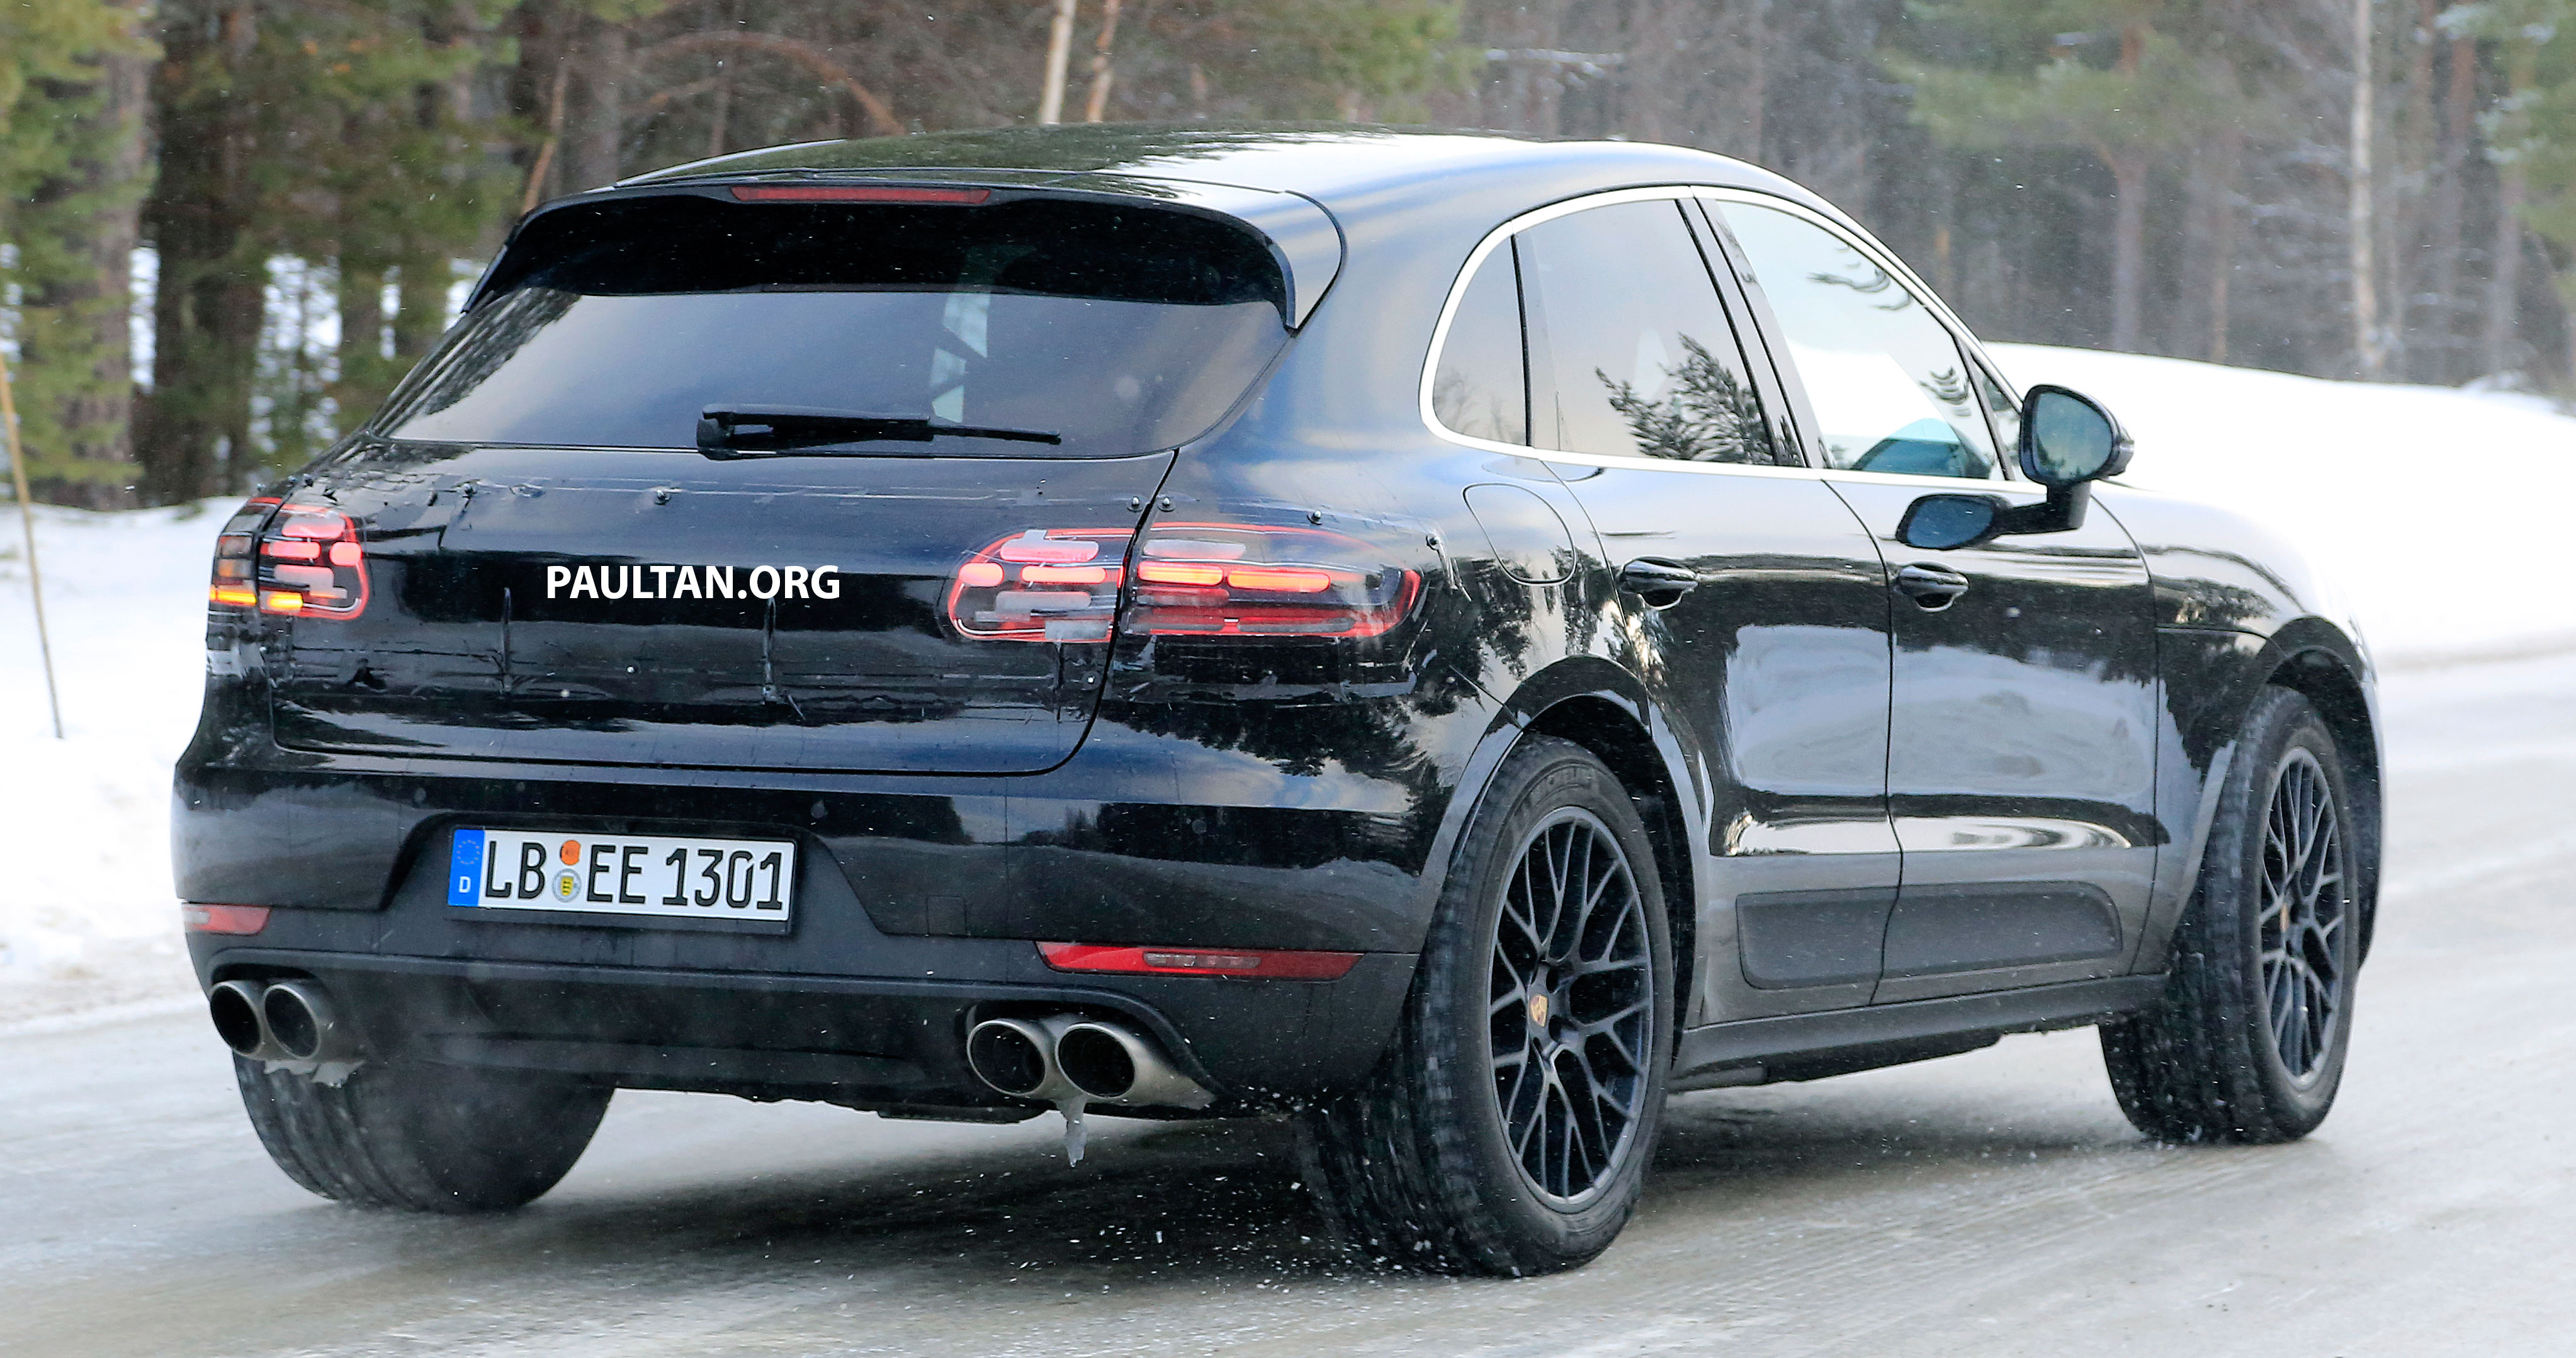 SPIED: Porsche Macan facelift undergoing winter trials ...